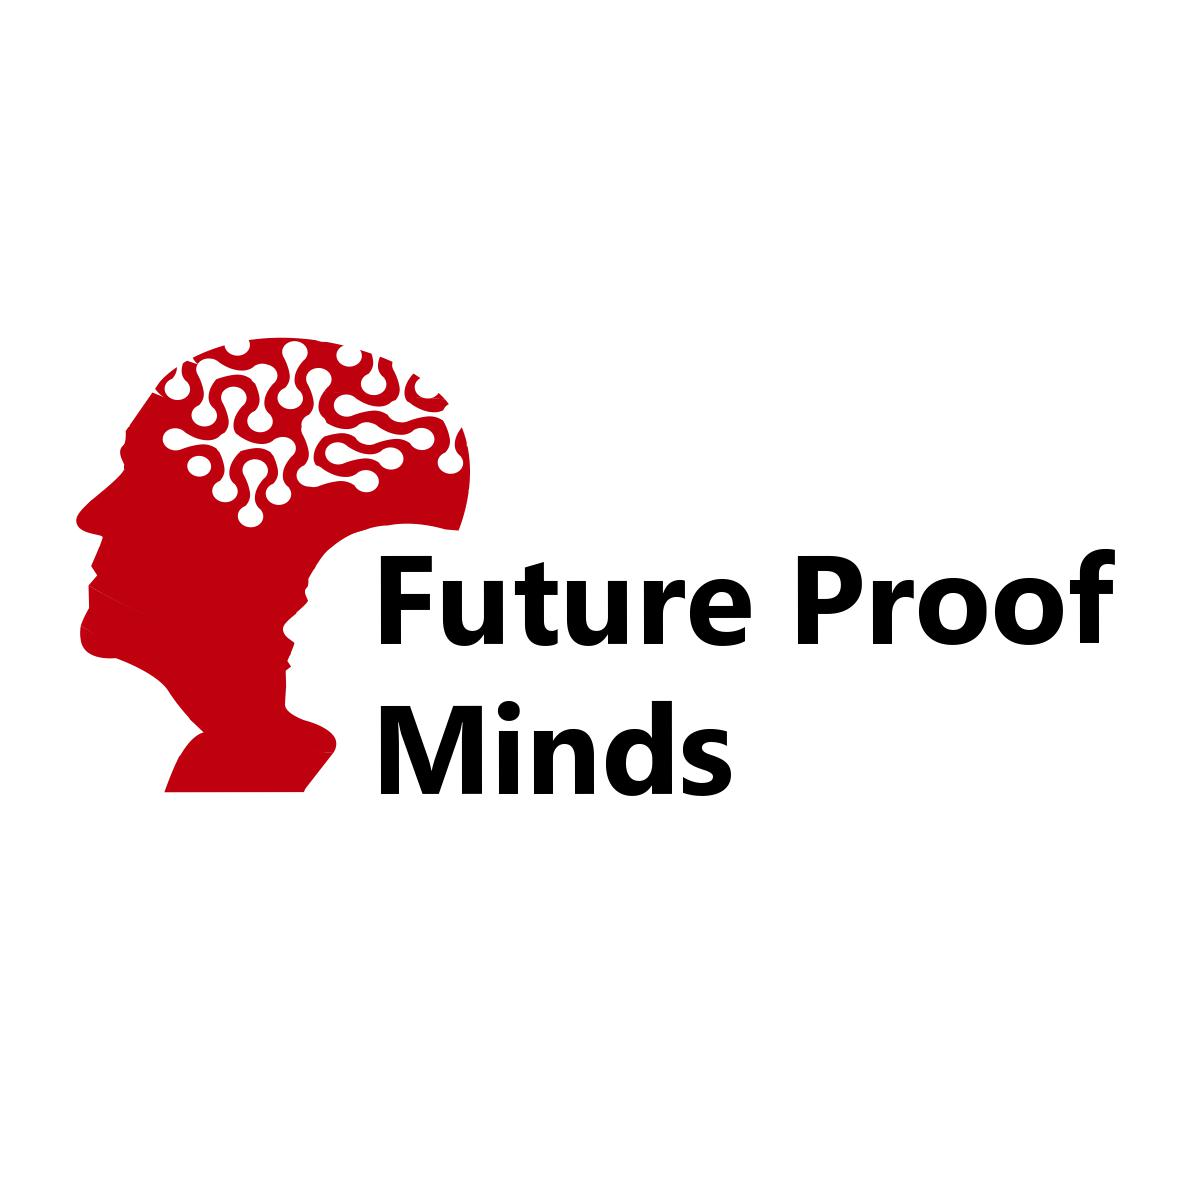 Future Proof Minds Consulting logo